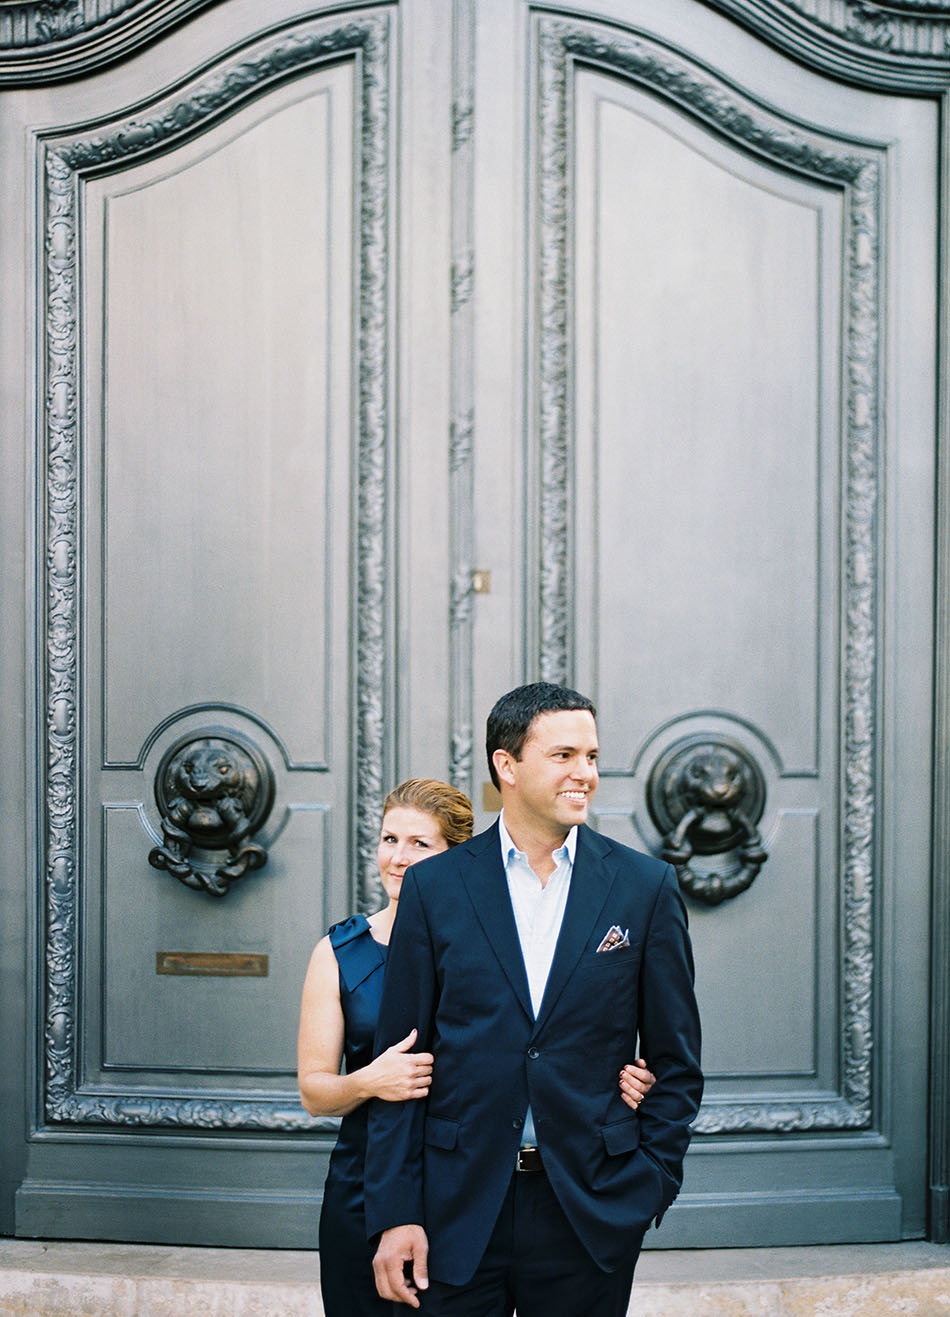 A Paris anniversary couples session captured on film by Ashley Kelemen